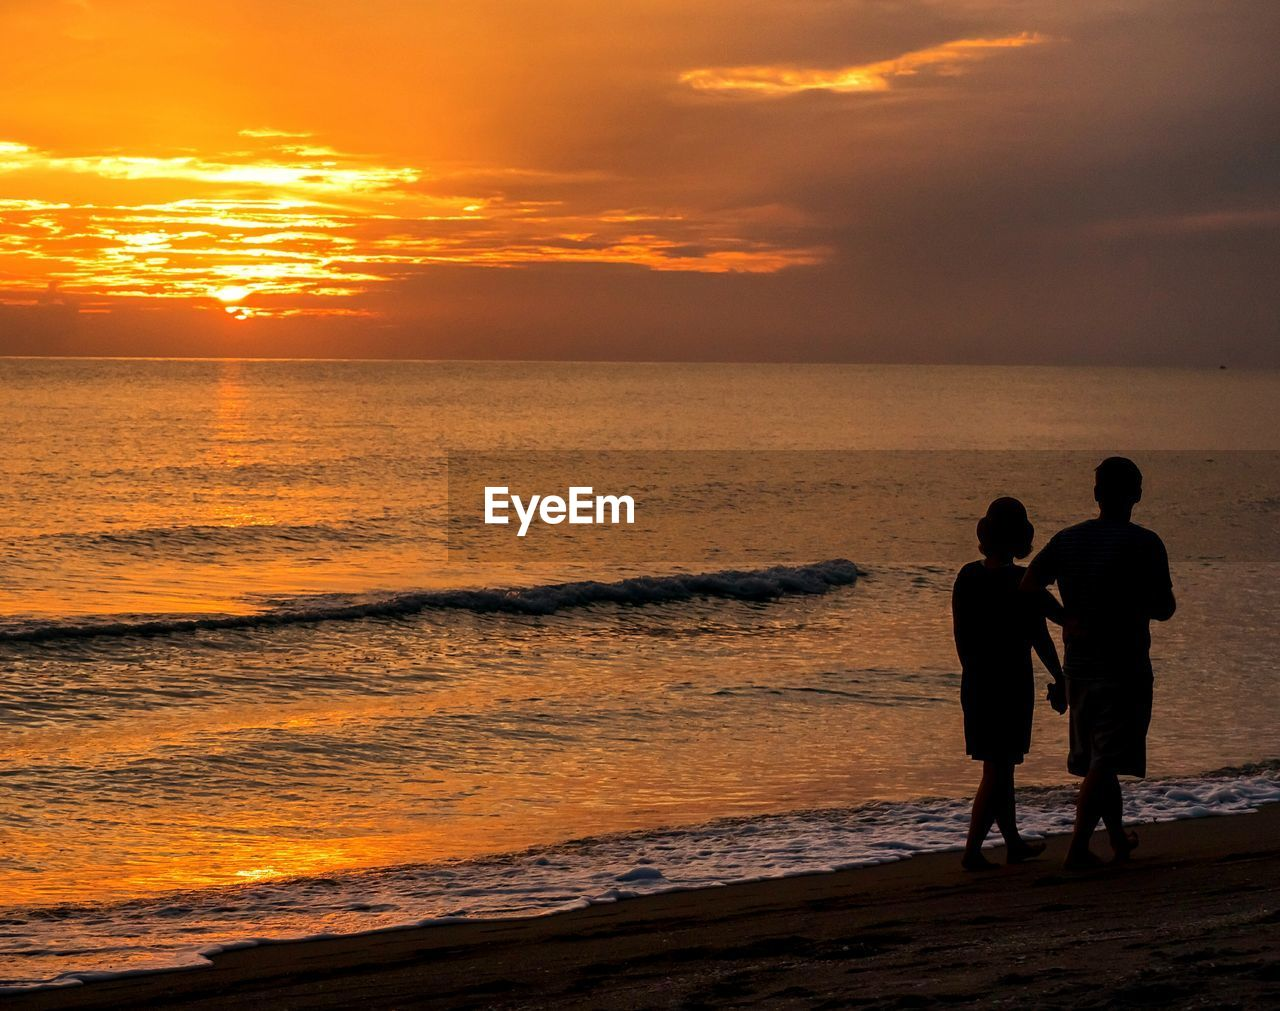 sunset, sky, water, sea, orange color, two people, beach, beauty in nature, cloud - sky, men, real people, scenics - nature, land, togetherness, leisure activity, horizon over water, bonding, standing, horizon, positive emotion, outdoors, couple - relationship